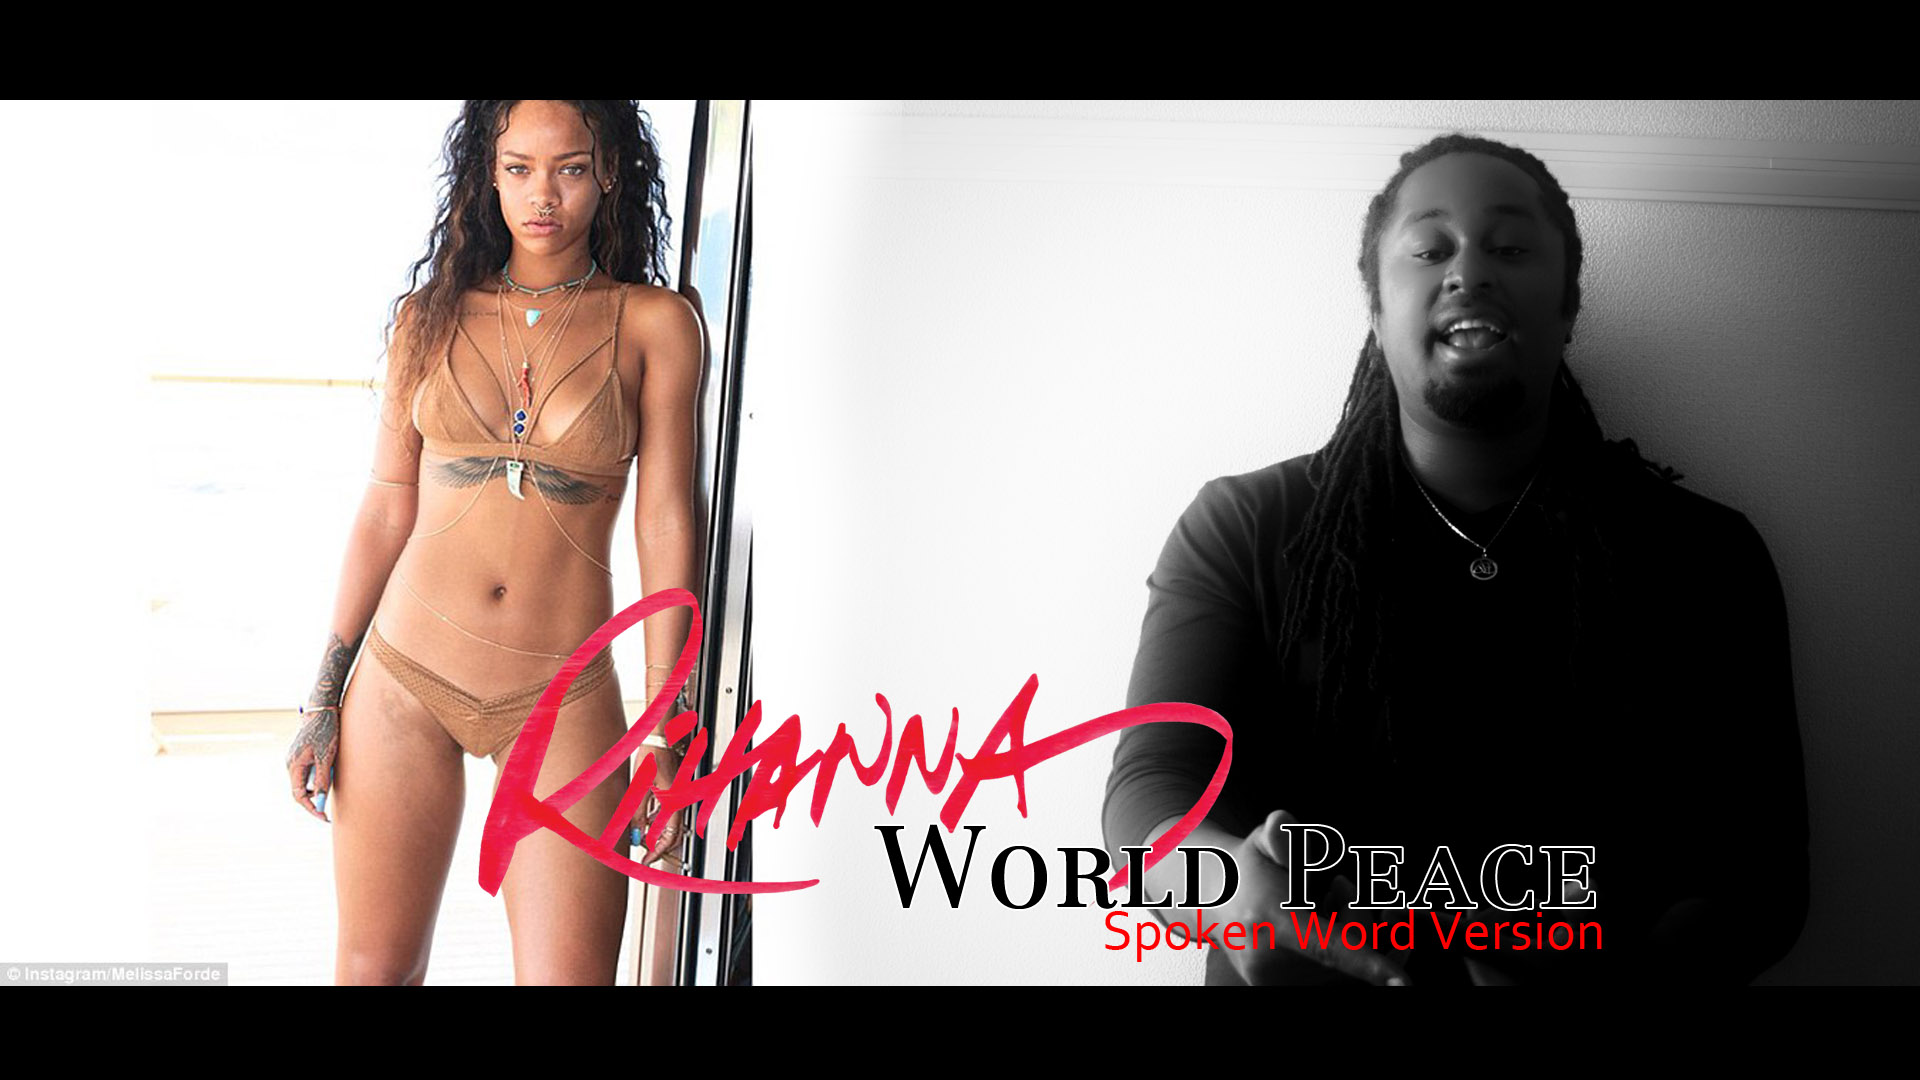 Rihanna – World Peace Spoken Word Version